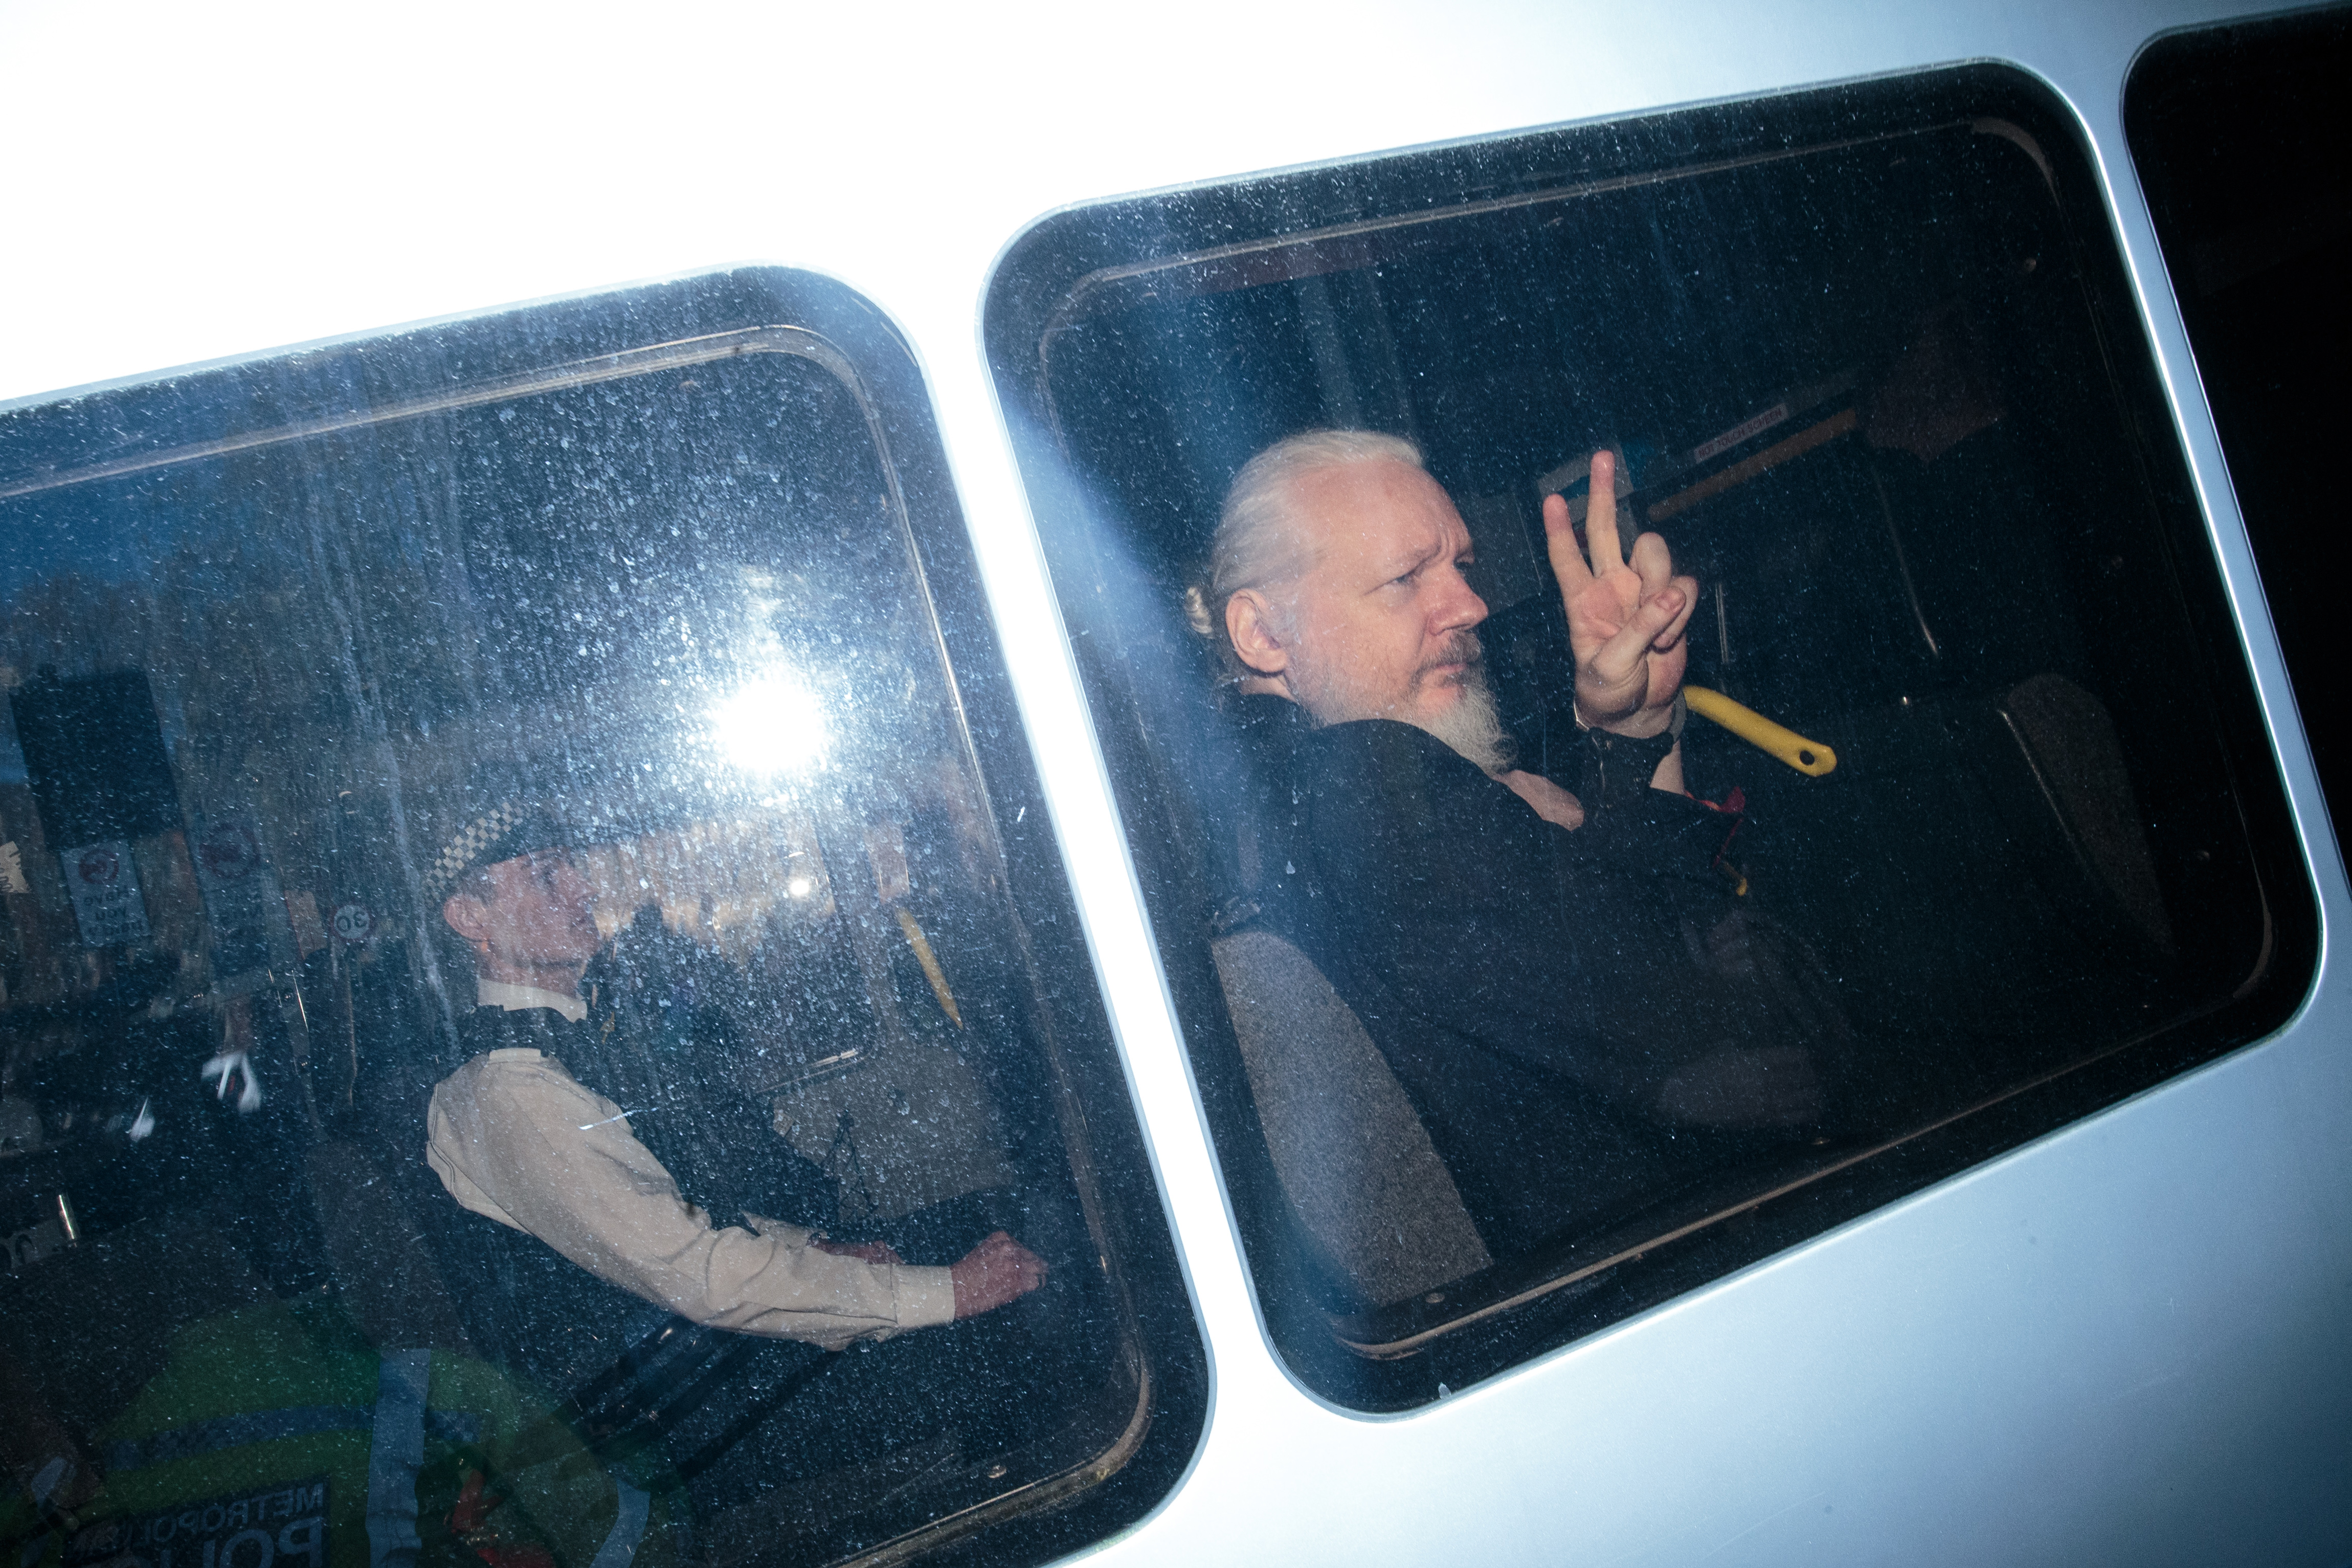 LONDON, ENGLAND - APRIL 11: Julian Assange gestures to the media from a police vehicle on his arrival at Westminster Magistrates court on April 11, 2019 in London, England. (Photo by Jack Taylor/Getty Images)